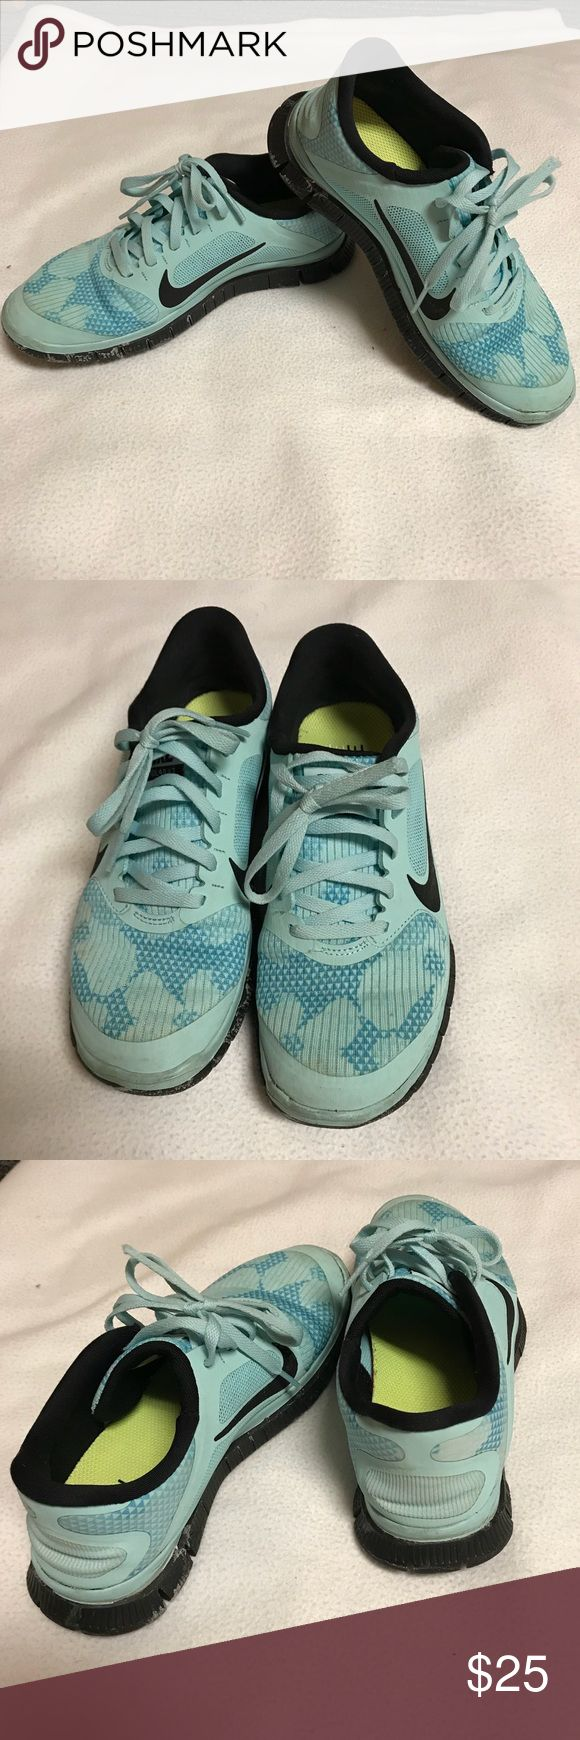 Nike free 4.0 tennis shoes Nike tennis shoes with spotted blue print. Visible wear but still highly wearable Nike Shoes Athletic Shoes